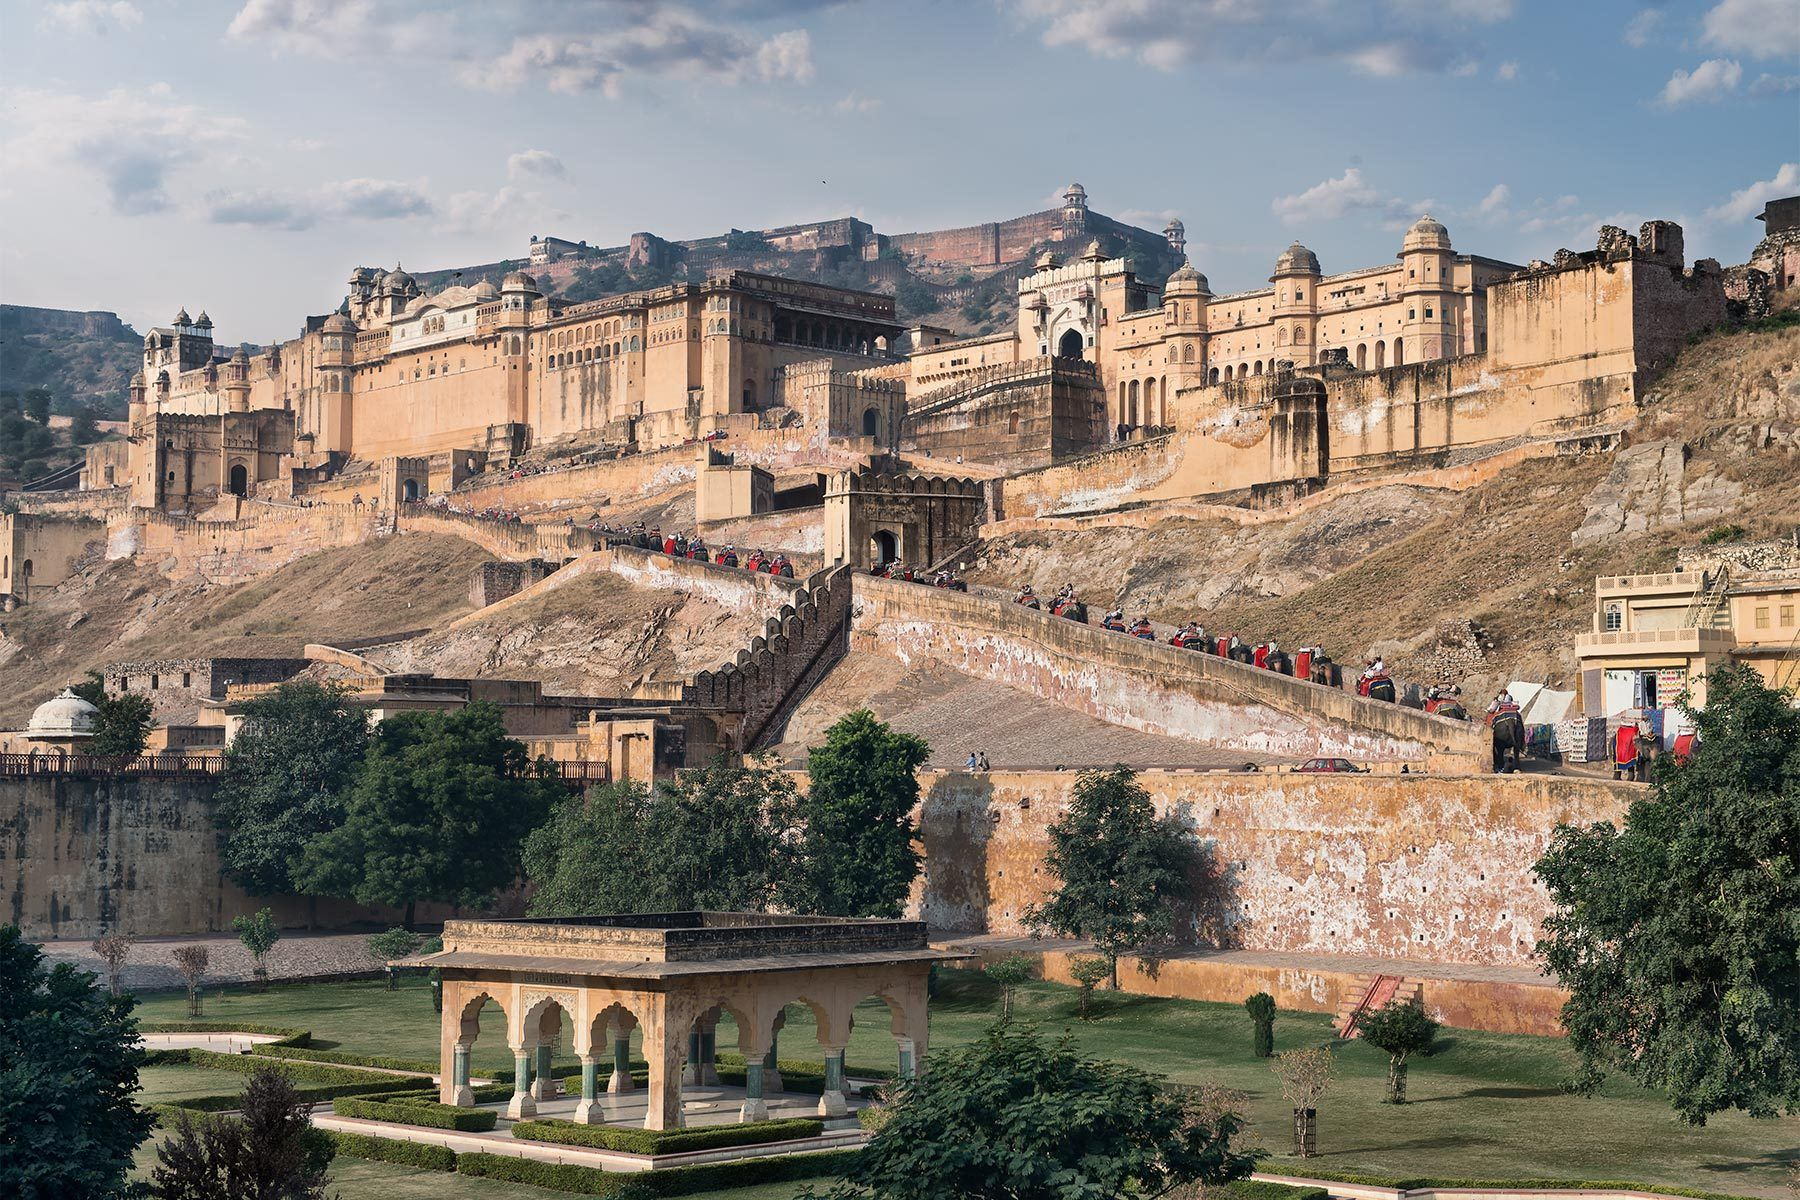 Rajasthan Tour - A Destination of Countless Attractions